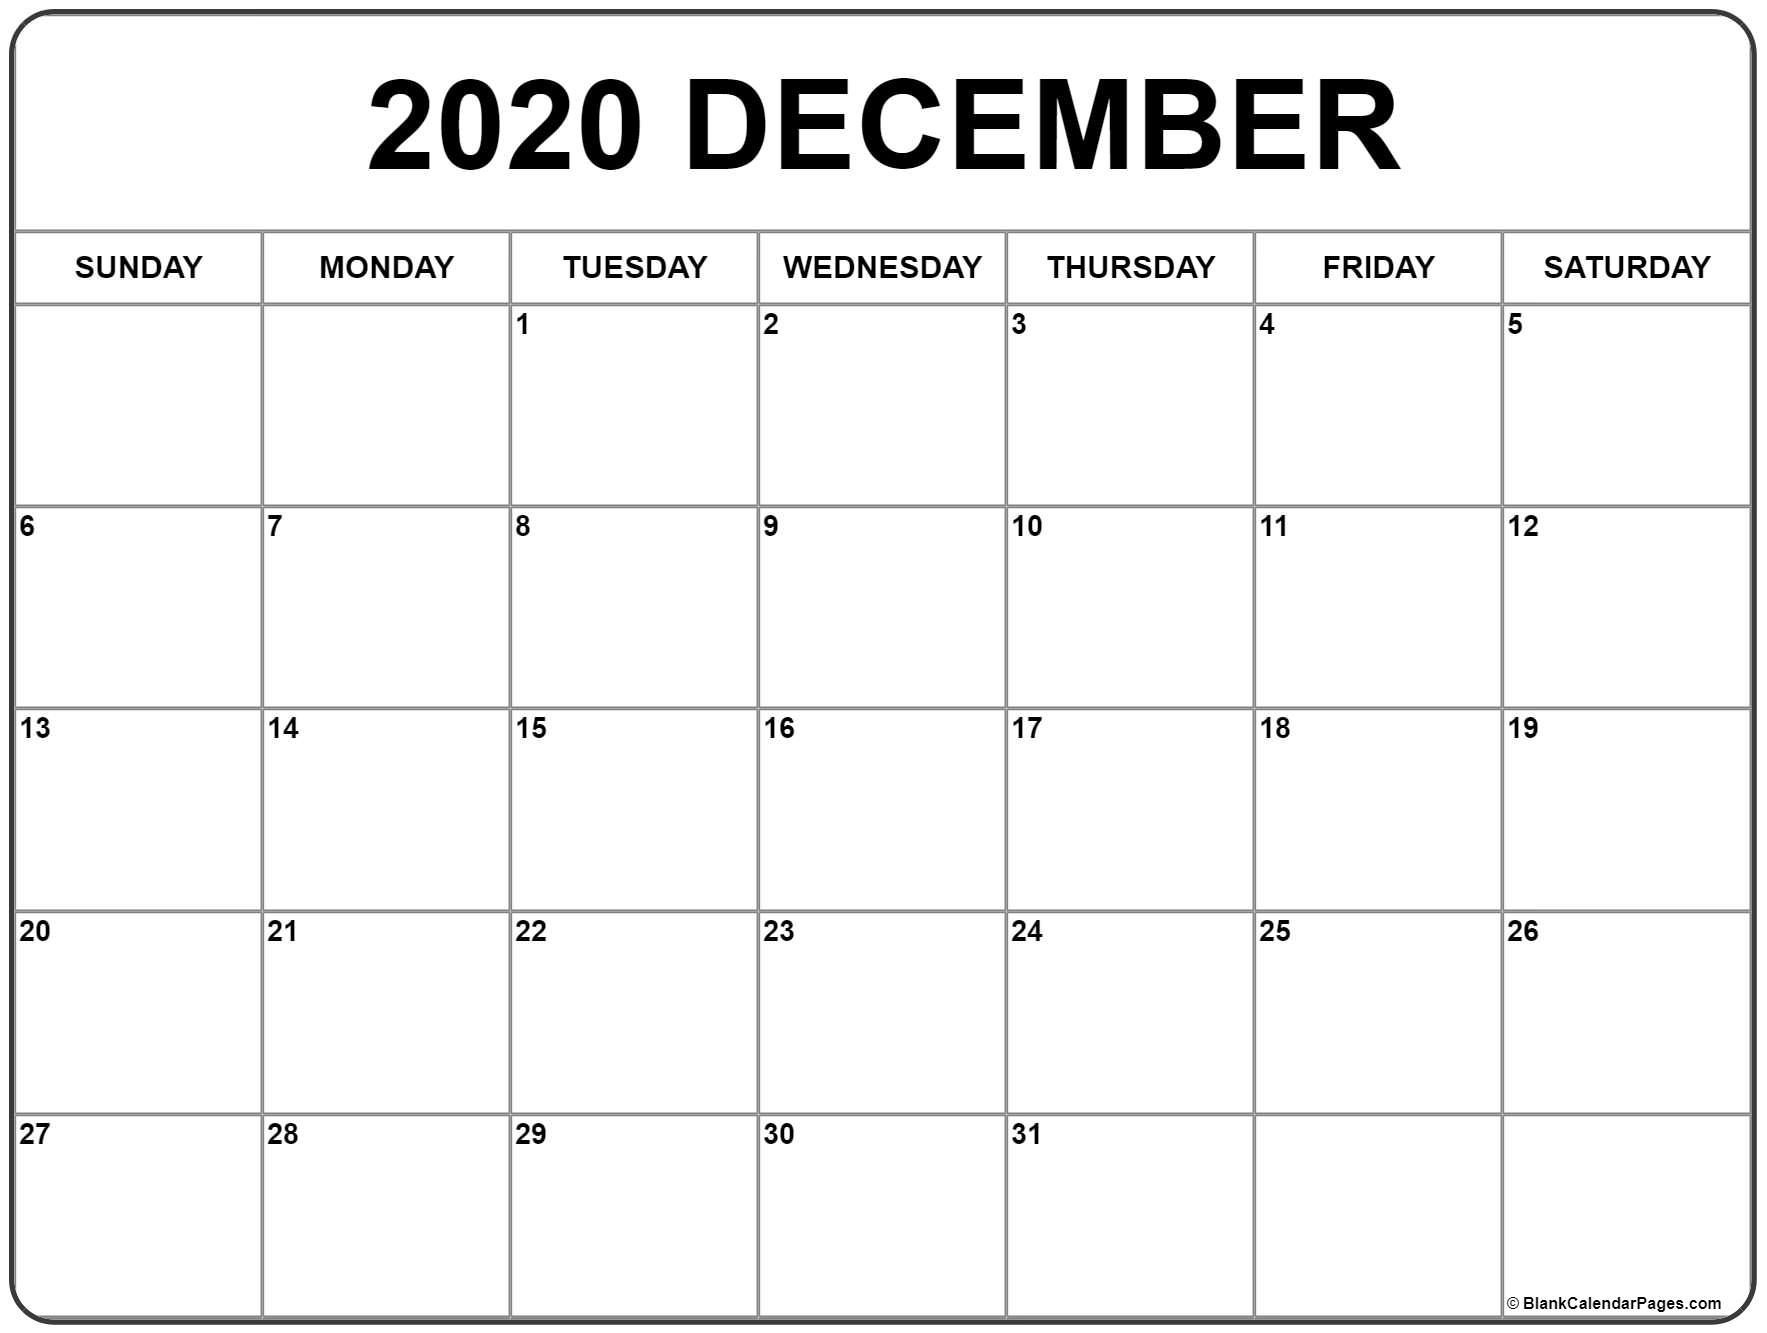 Blank Calendar December 2020  Bolan.horizonconsulting.co with Calander For December 2020